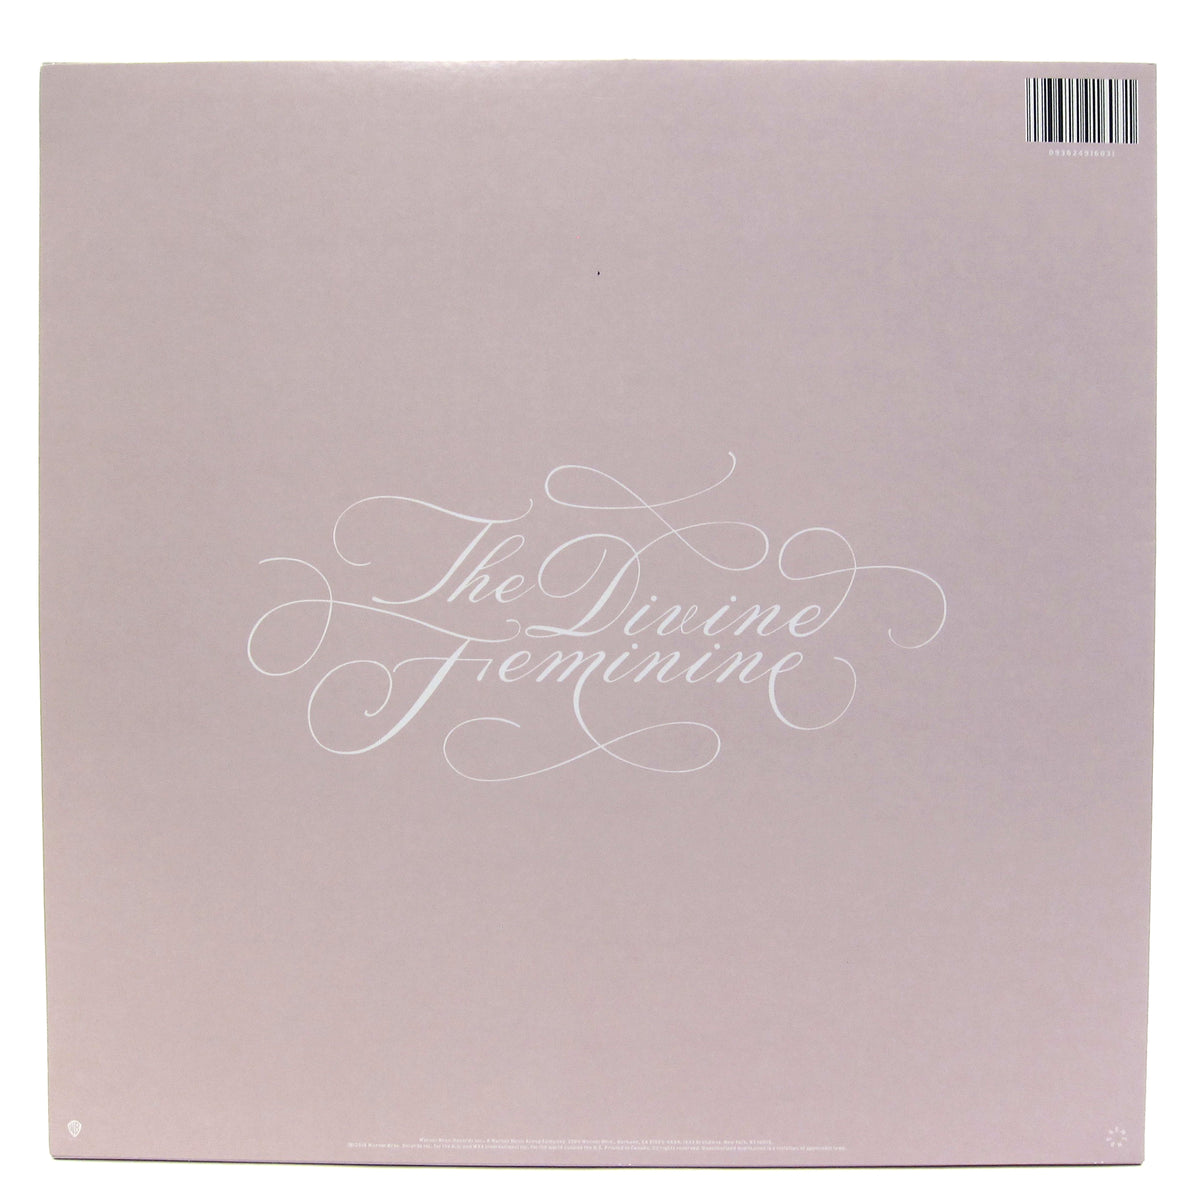 Mac Miller: The Divine Feminine Vinyl 2LP